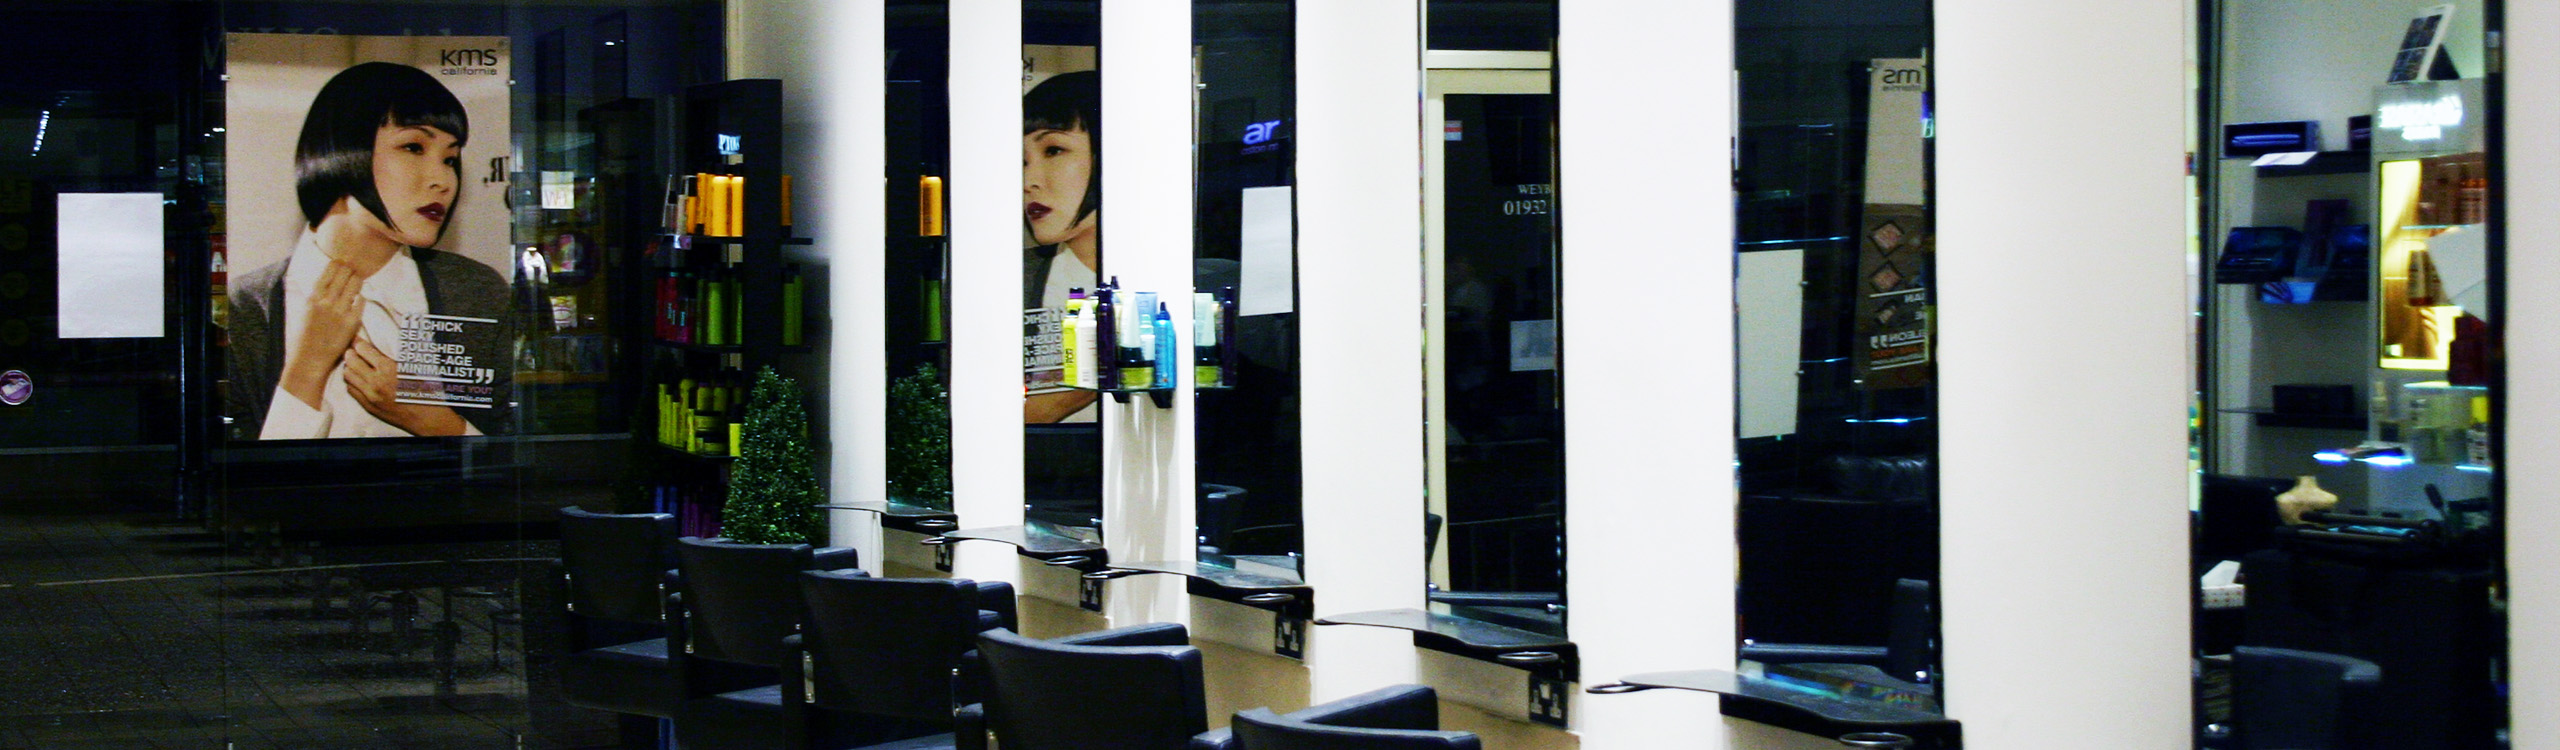 Browns Hair & Beauty Salon 2